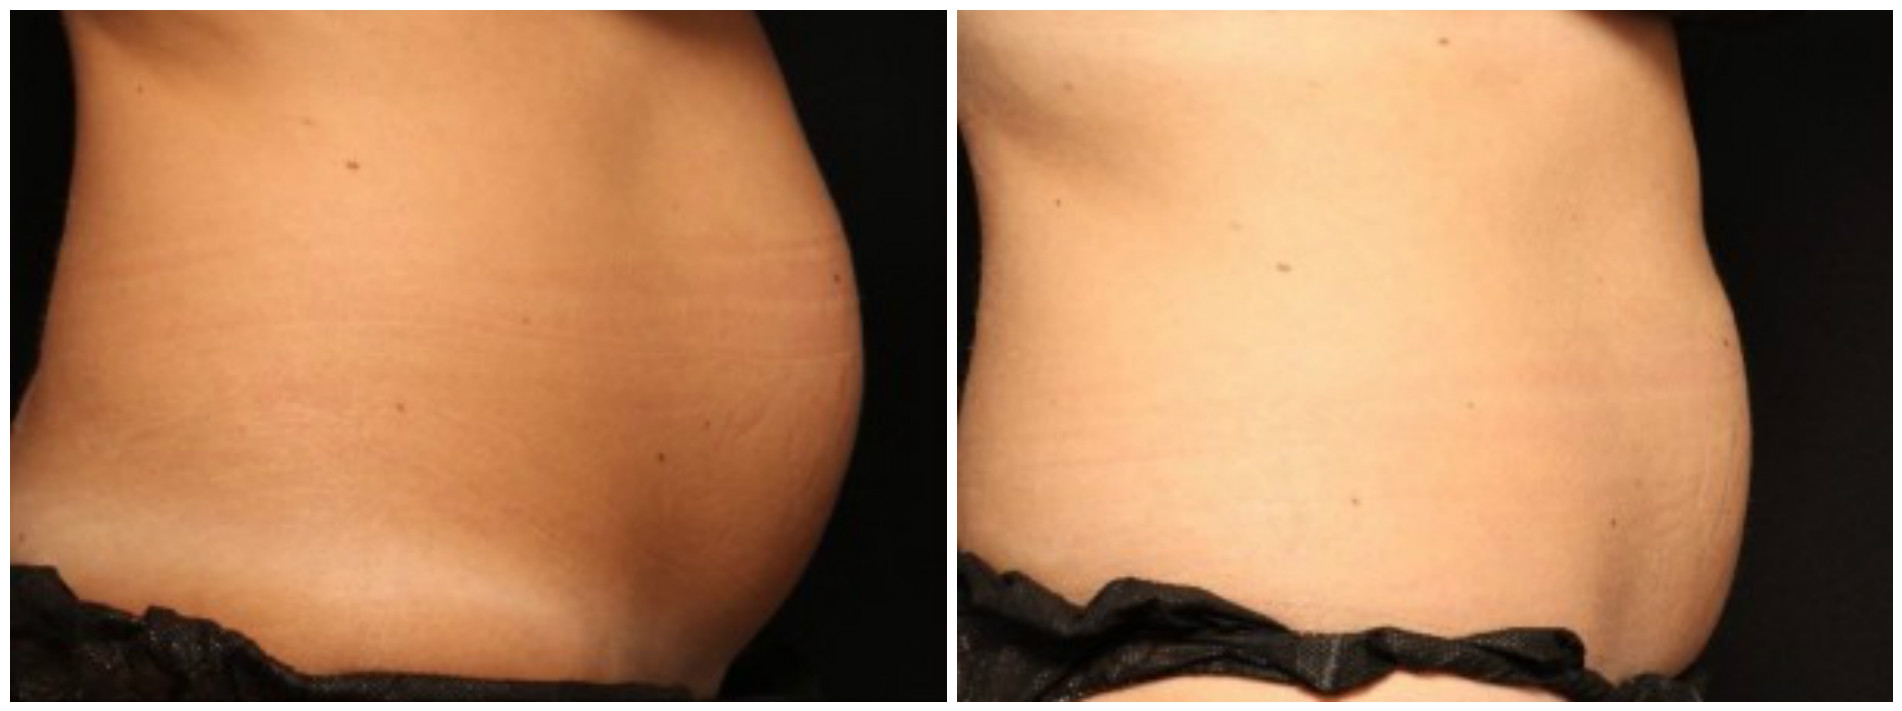 coolsculpting, before and after - side view